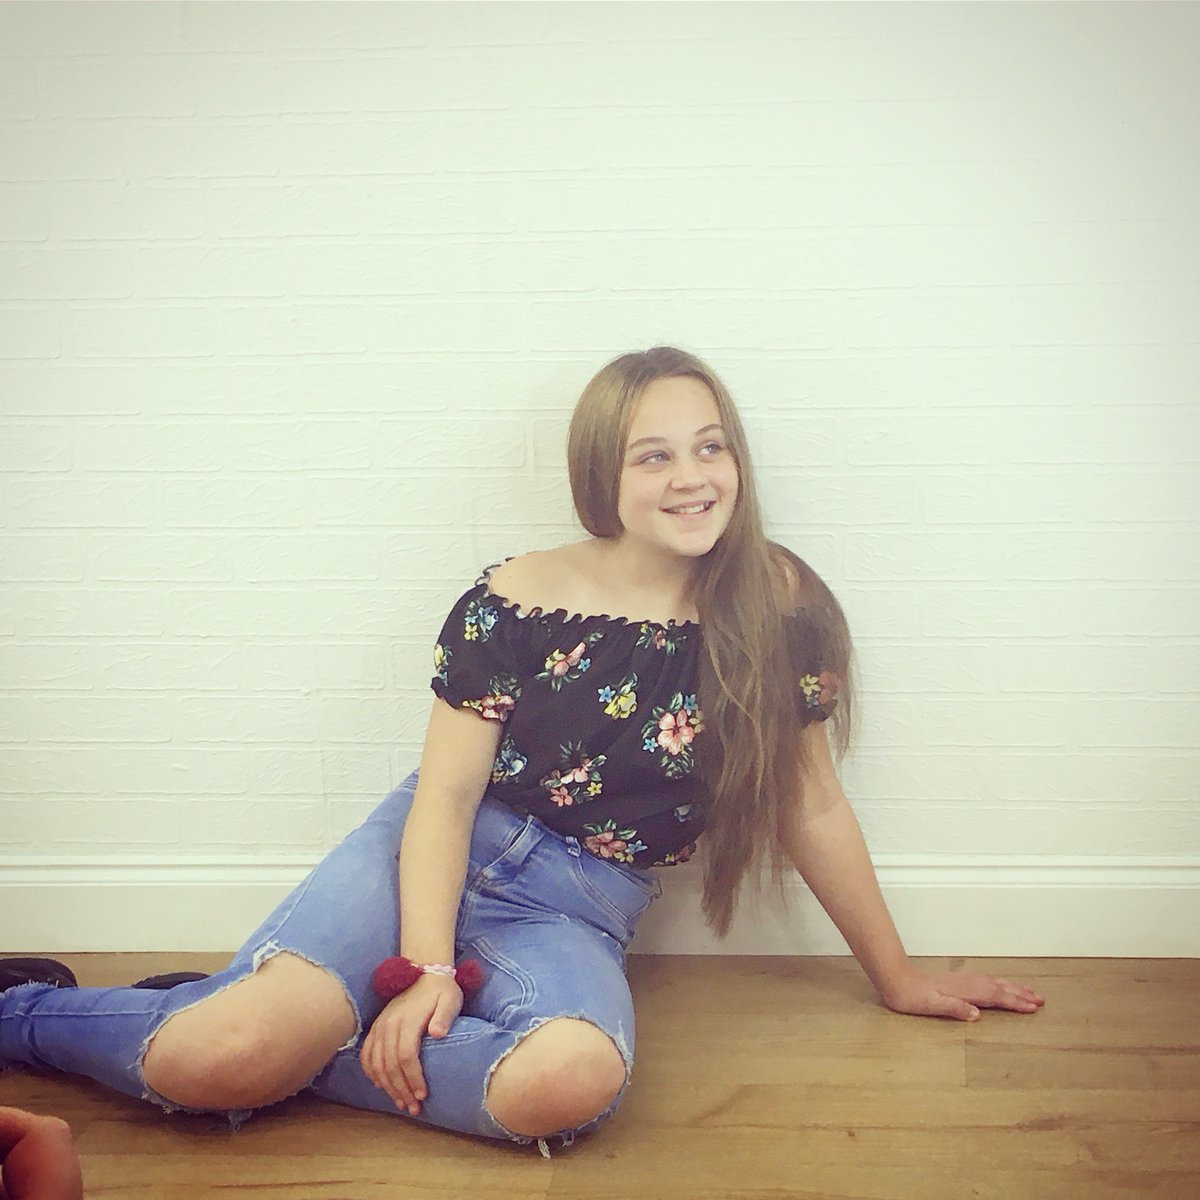 My daughter she could be a #model #modelling #photoshoot #beautiful